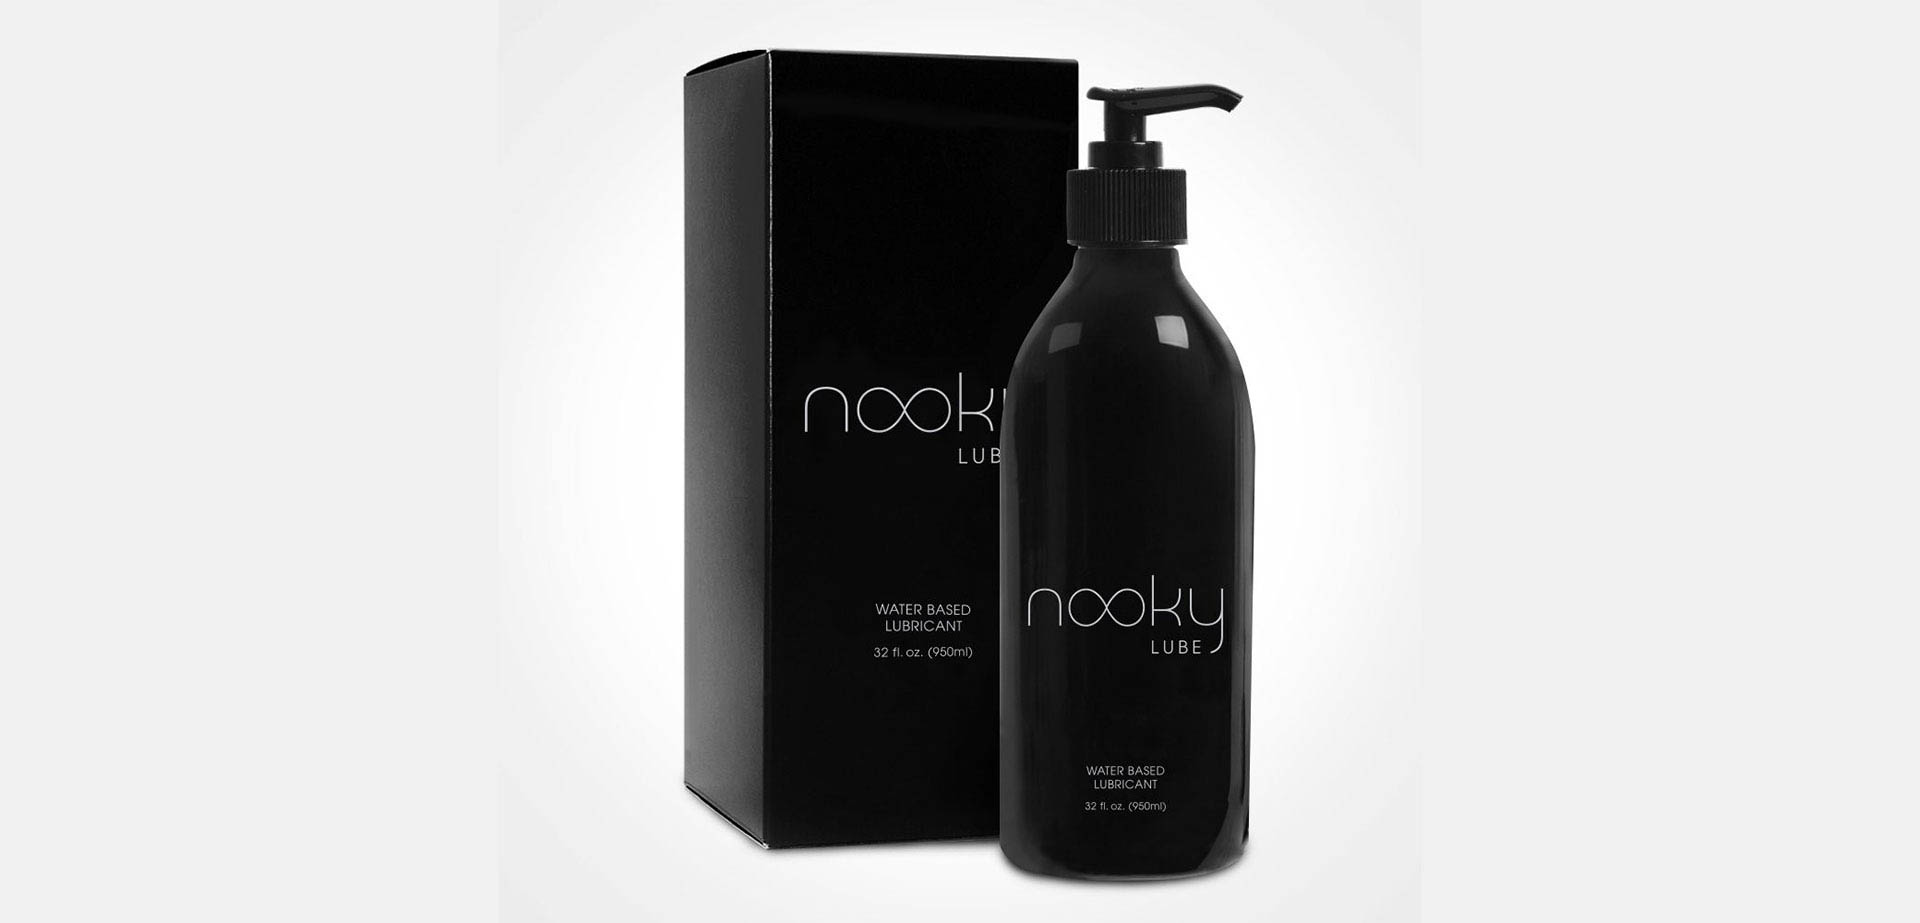 Personal Water Based Lube Nooky.